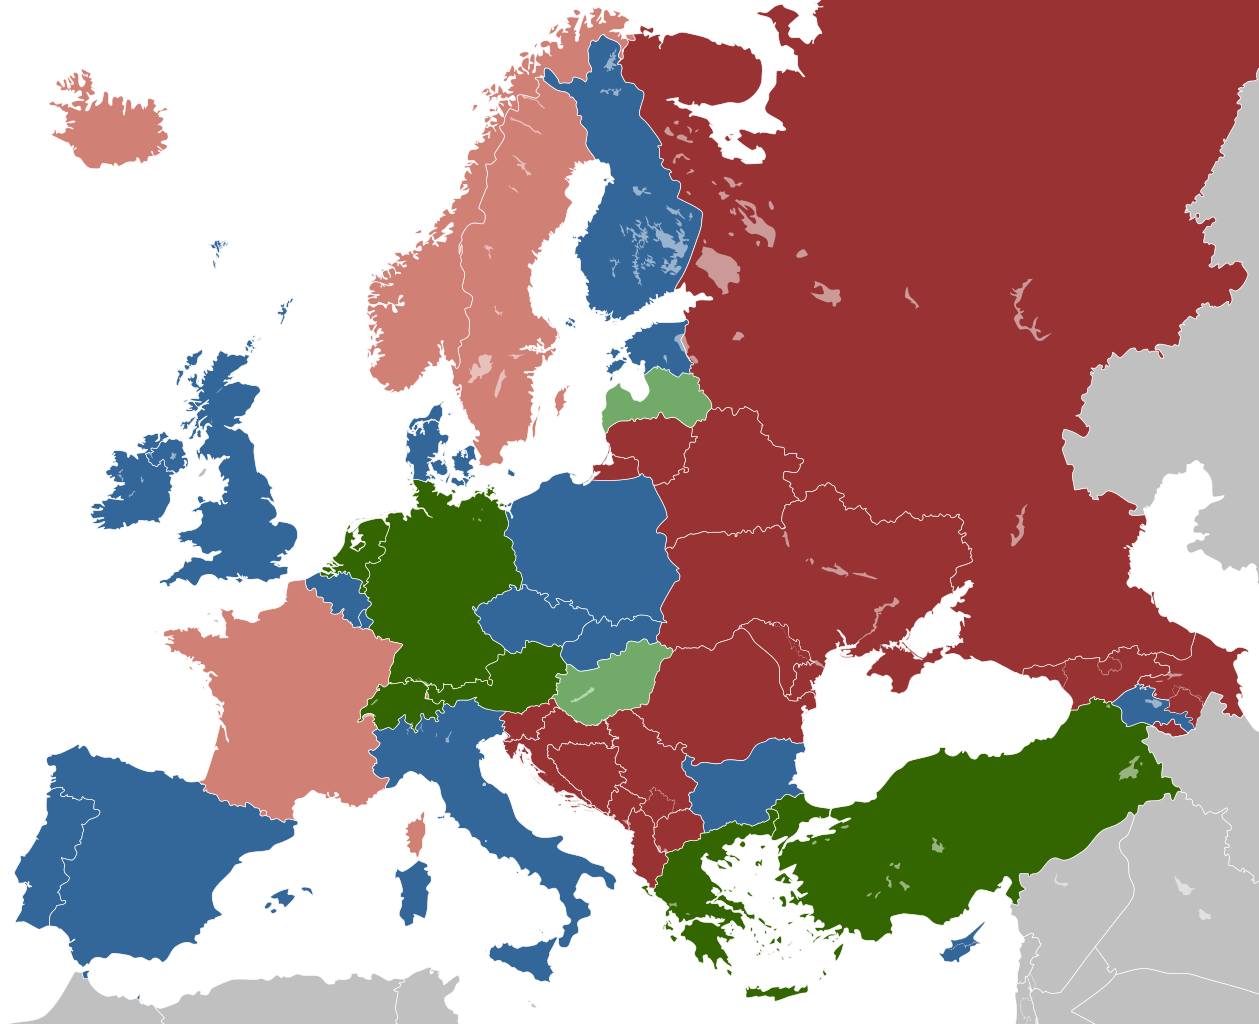 Prostitution in Europe by countries